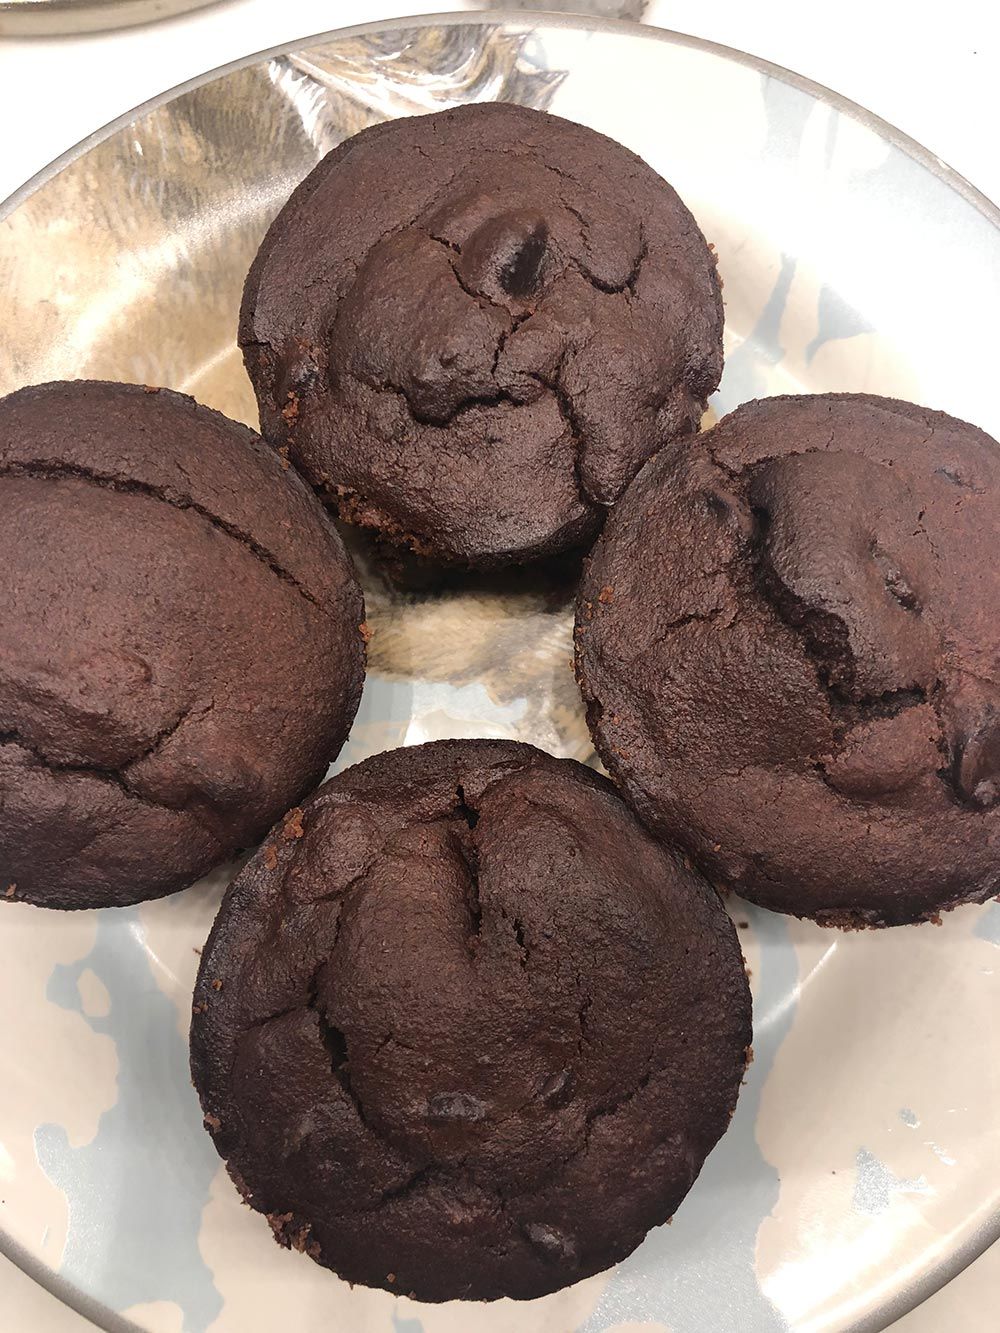 Sunday chocolate gluten-free muffins